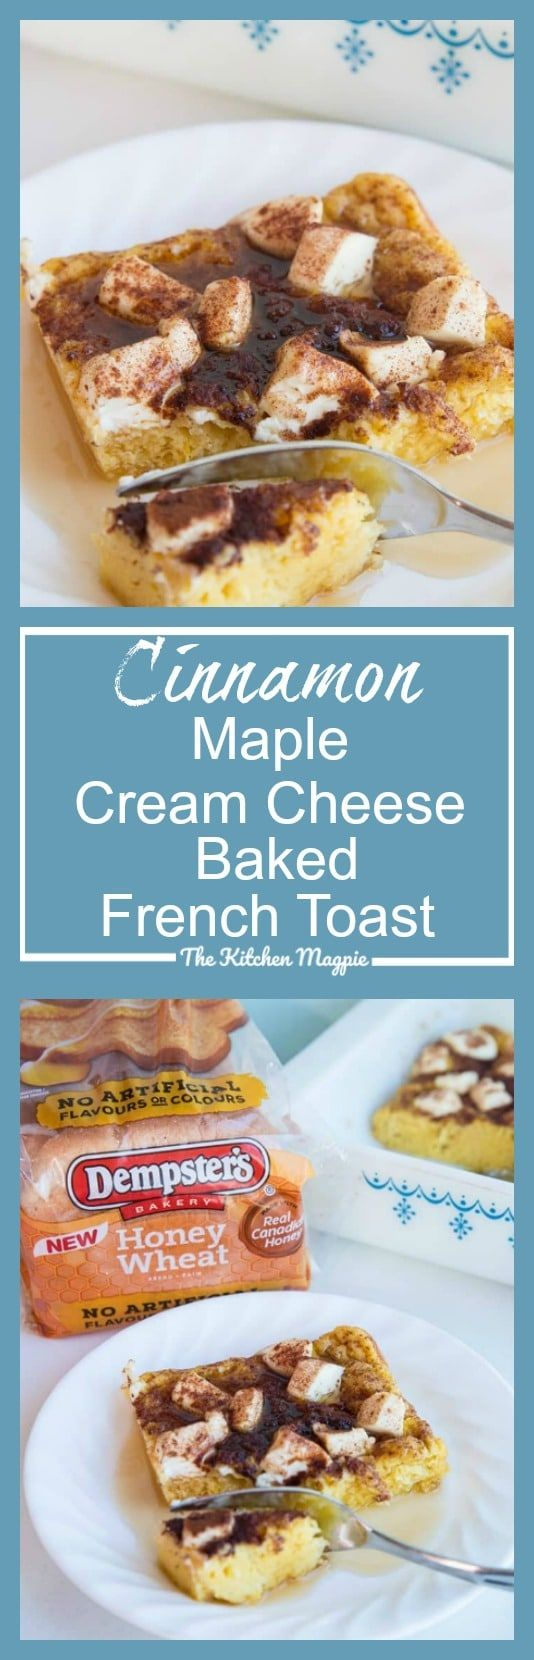 Cinnamon Maple Cream Cheese Baked French Toast - The Kitchen Magpie